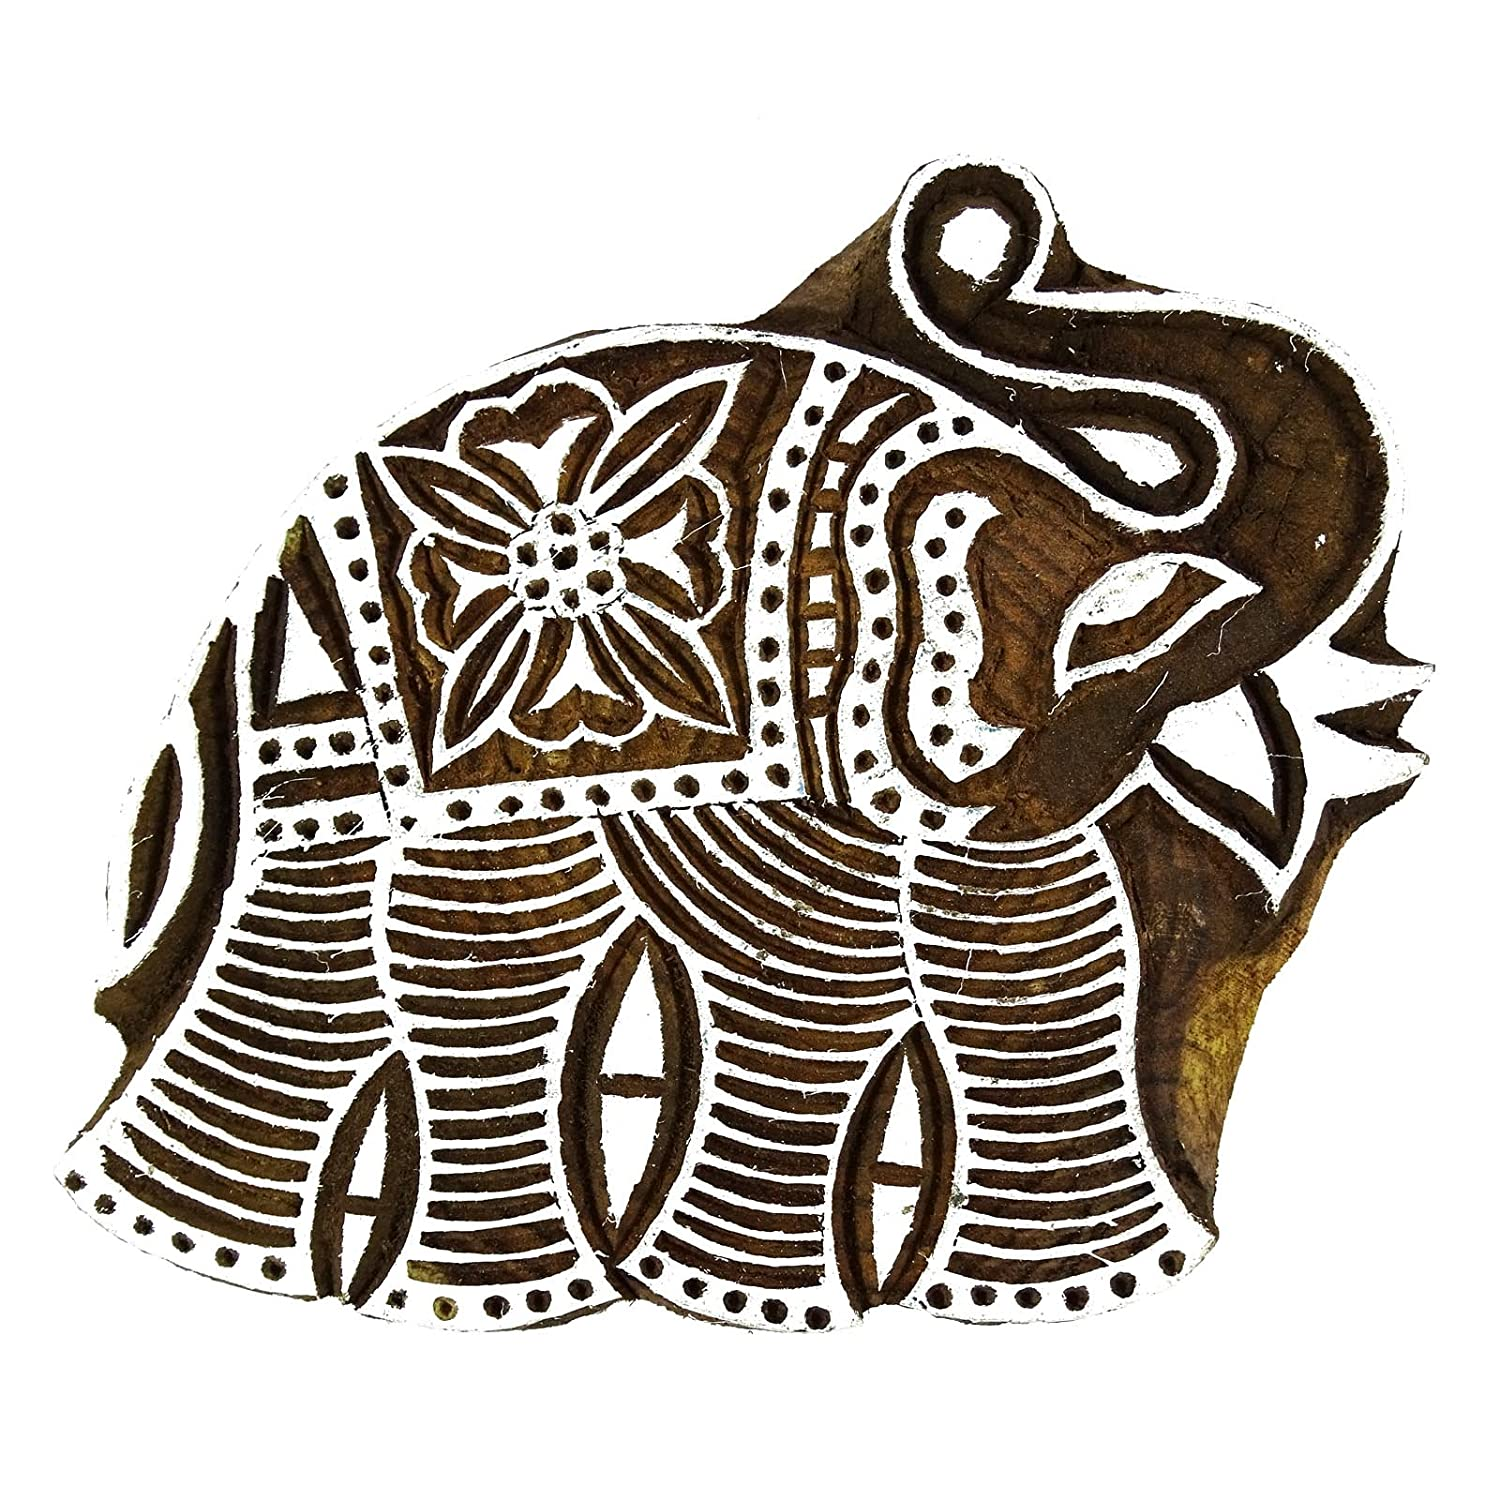 Elephant Wood Block Hand Carved Brown Printing Block Textile Stamp Indianbeautifulart